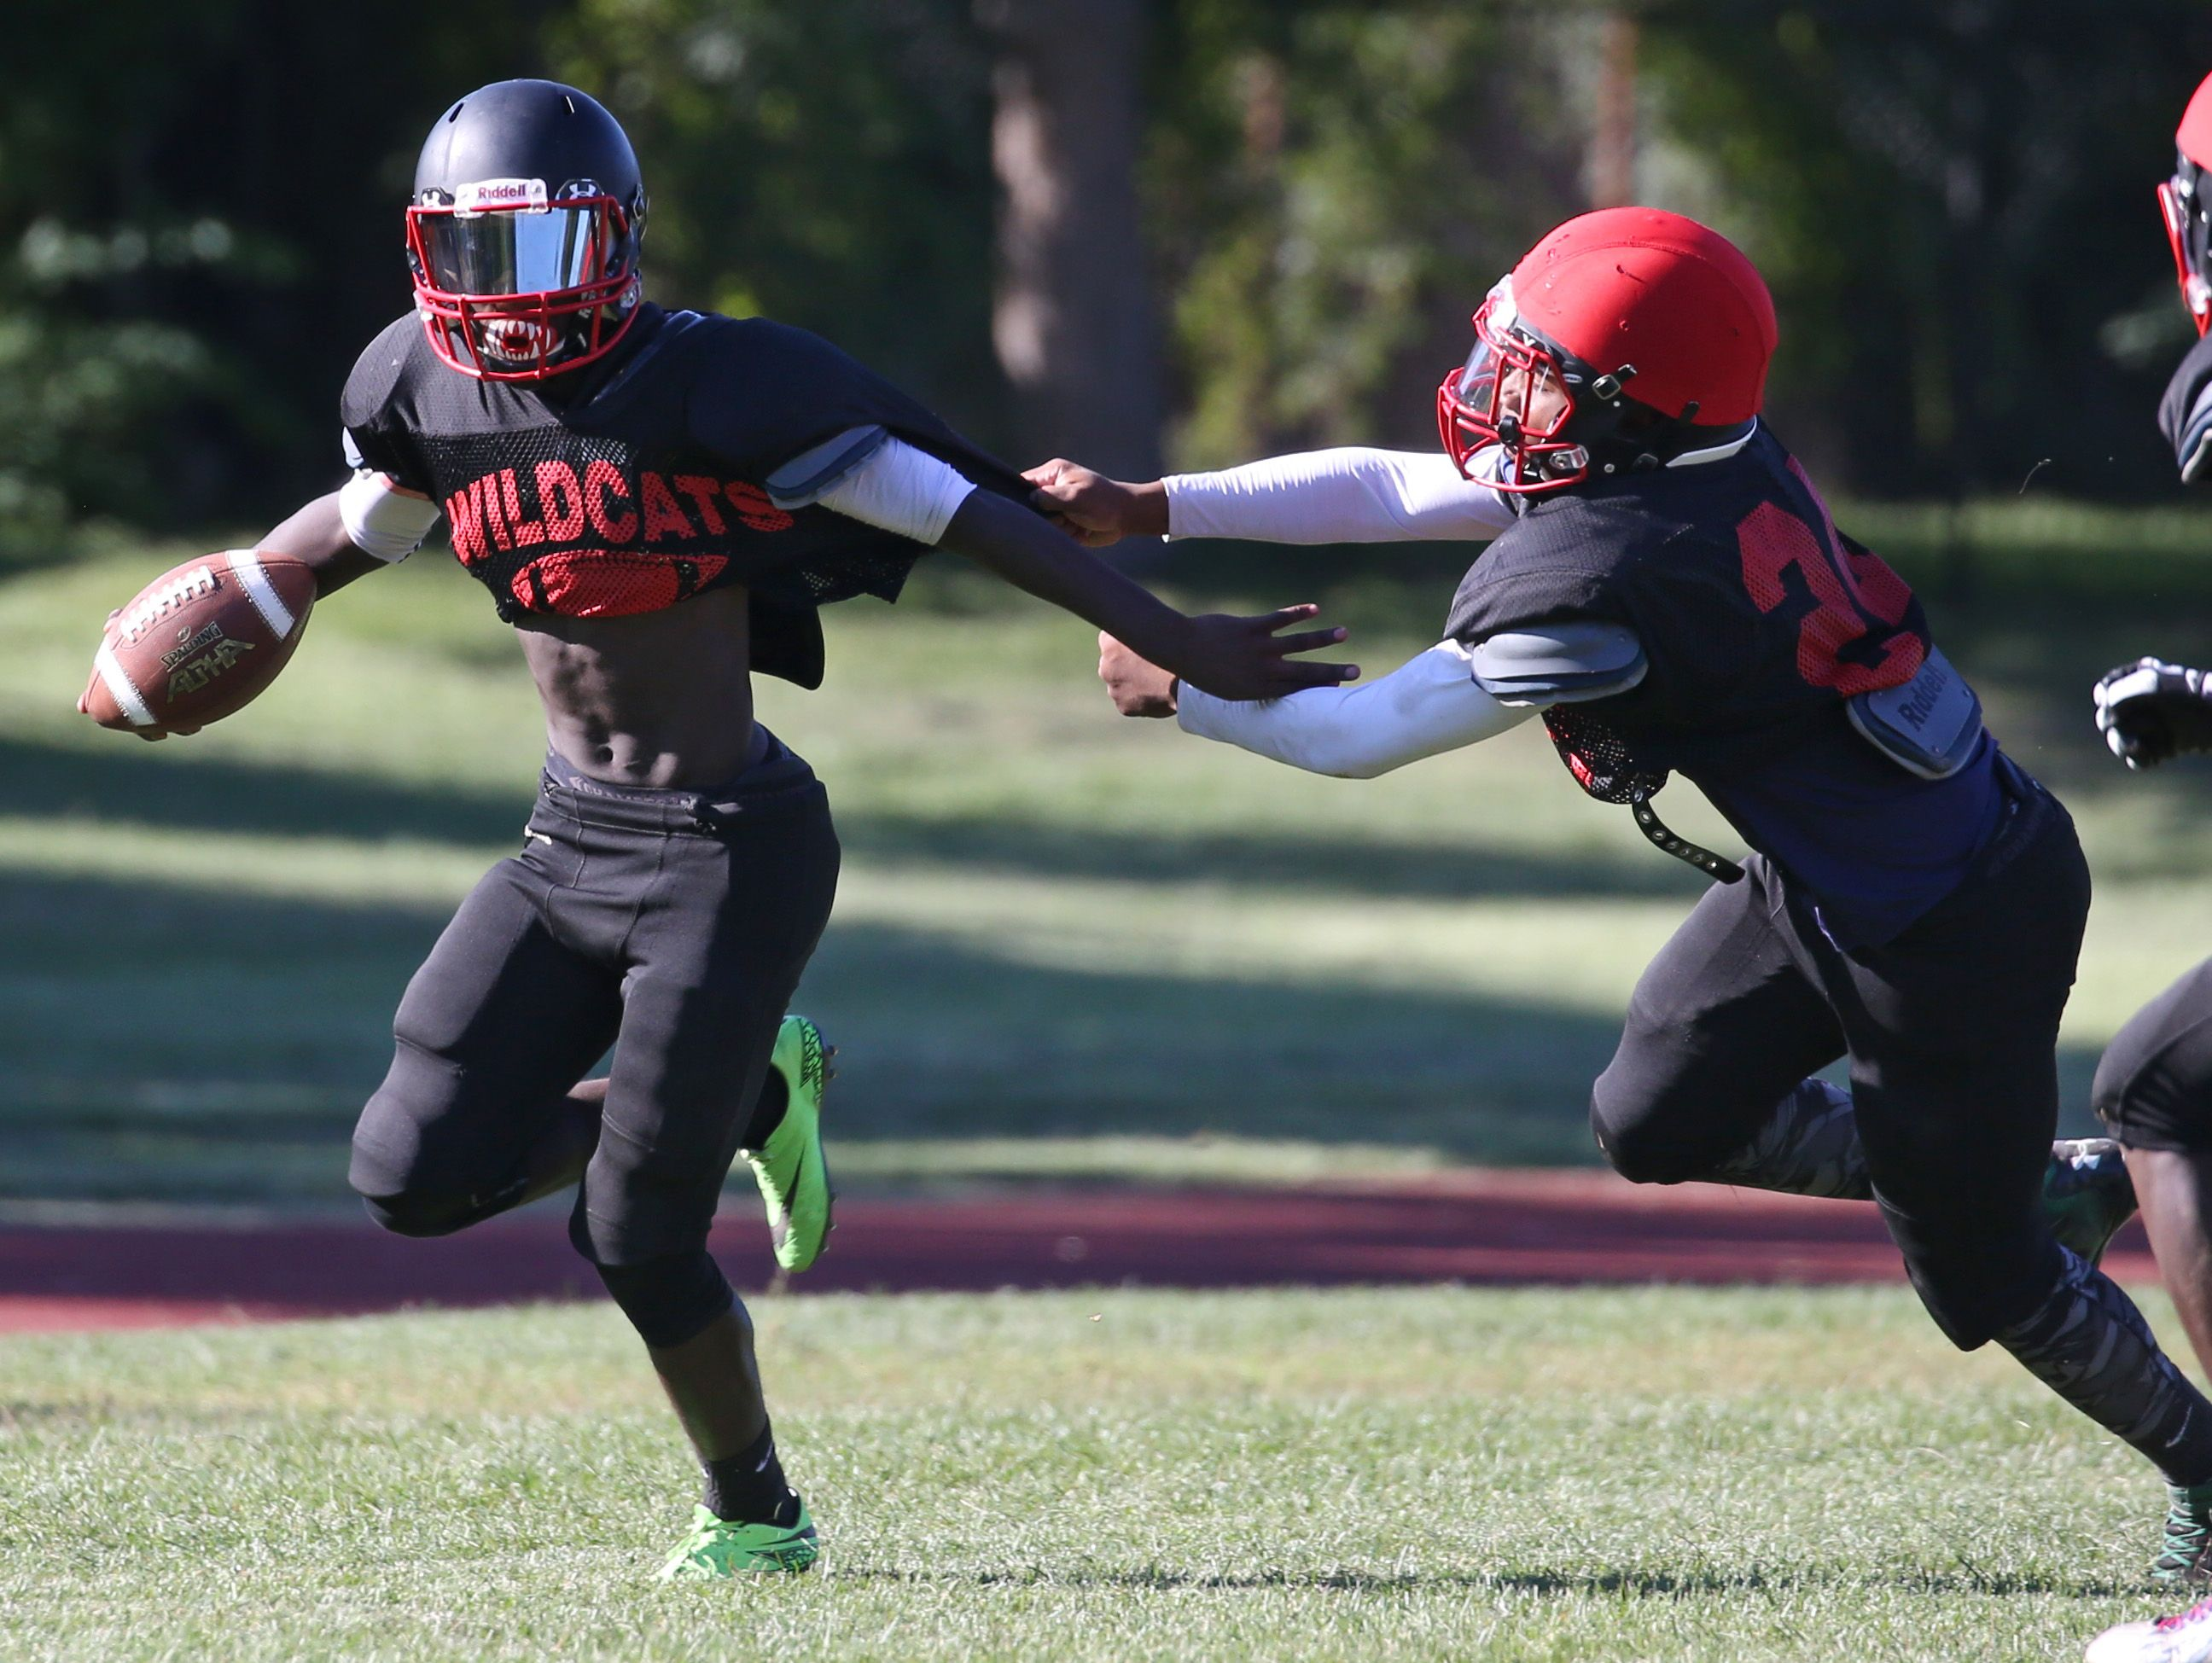 Wilson wide receiver Ricky Gamble, left, sheds tacklers as he races down the sidelines during their practice Monday, Aug. 29, 2016 in Rochester.